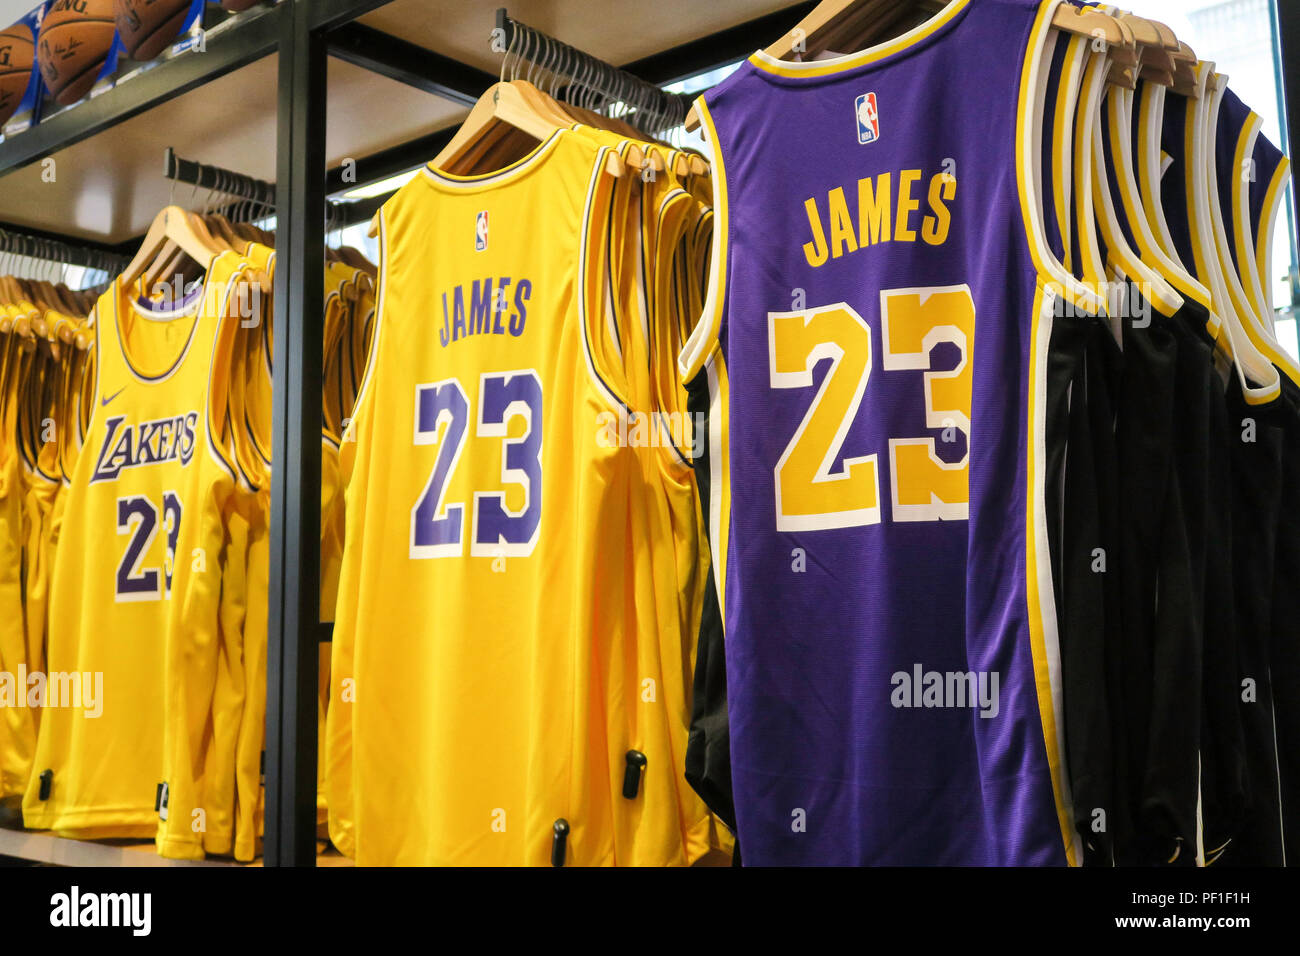 reputable site d20c9 f5dc5 Lebron James and Lakers Branded Merchandise at the NBA Store ...